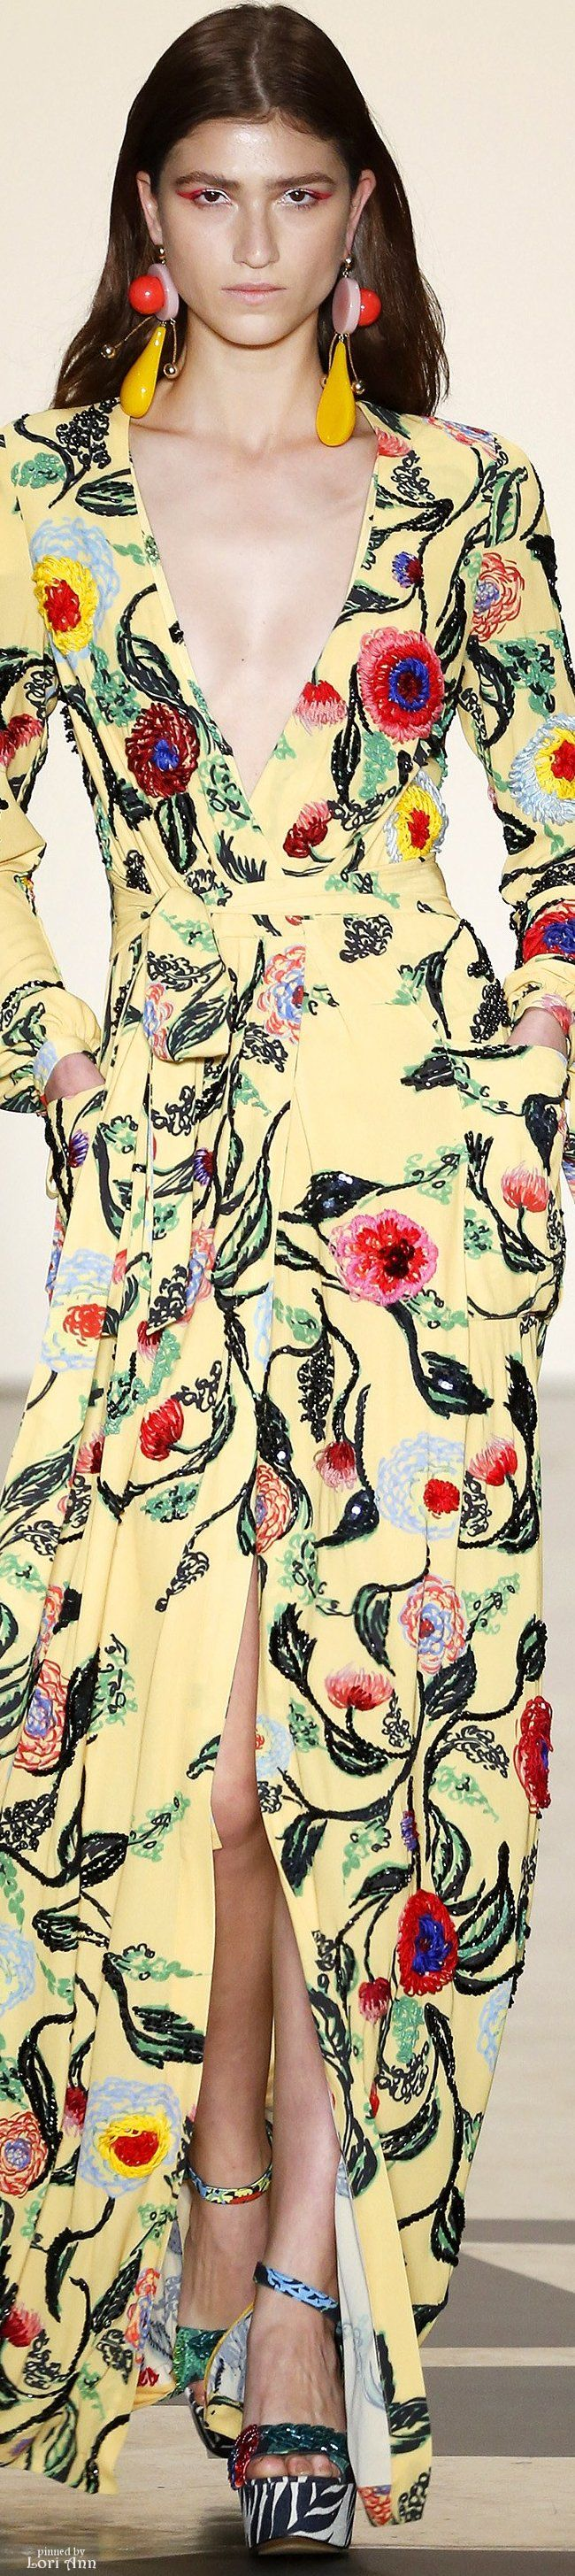 """PatBo Spring 2017 RTW  ❤❦♪♫Thanks, Pinterest Pinners, for stopping by, viewing, re-pinning, & following my boards. Have a beautiful day! ^..^ and """"Feel free to share on Pinterest ♡♥♡♥ #fashionupdates ❤❦♪♫!♥✿´¯`*•.¸¸✿♥✿´♥✿´¯`*•.¸¸✿♥✿´¯`*•.¸¸✿♥✿"""